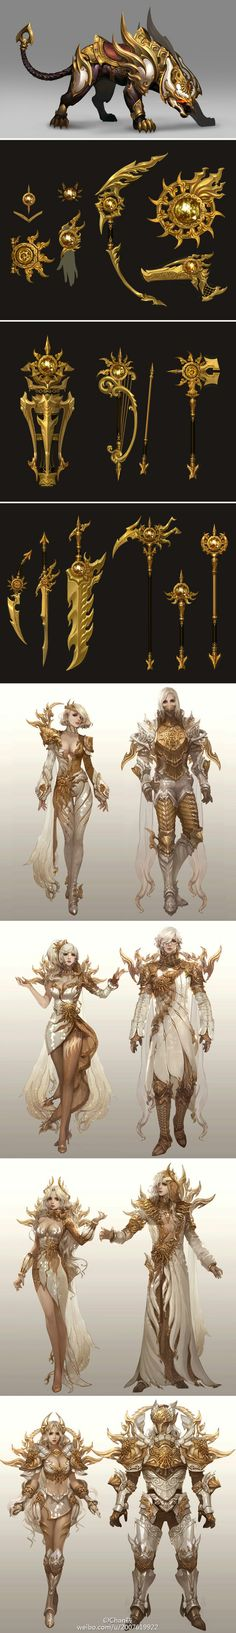 White and Gold Dynasty. King Regalia Idea